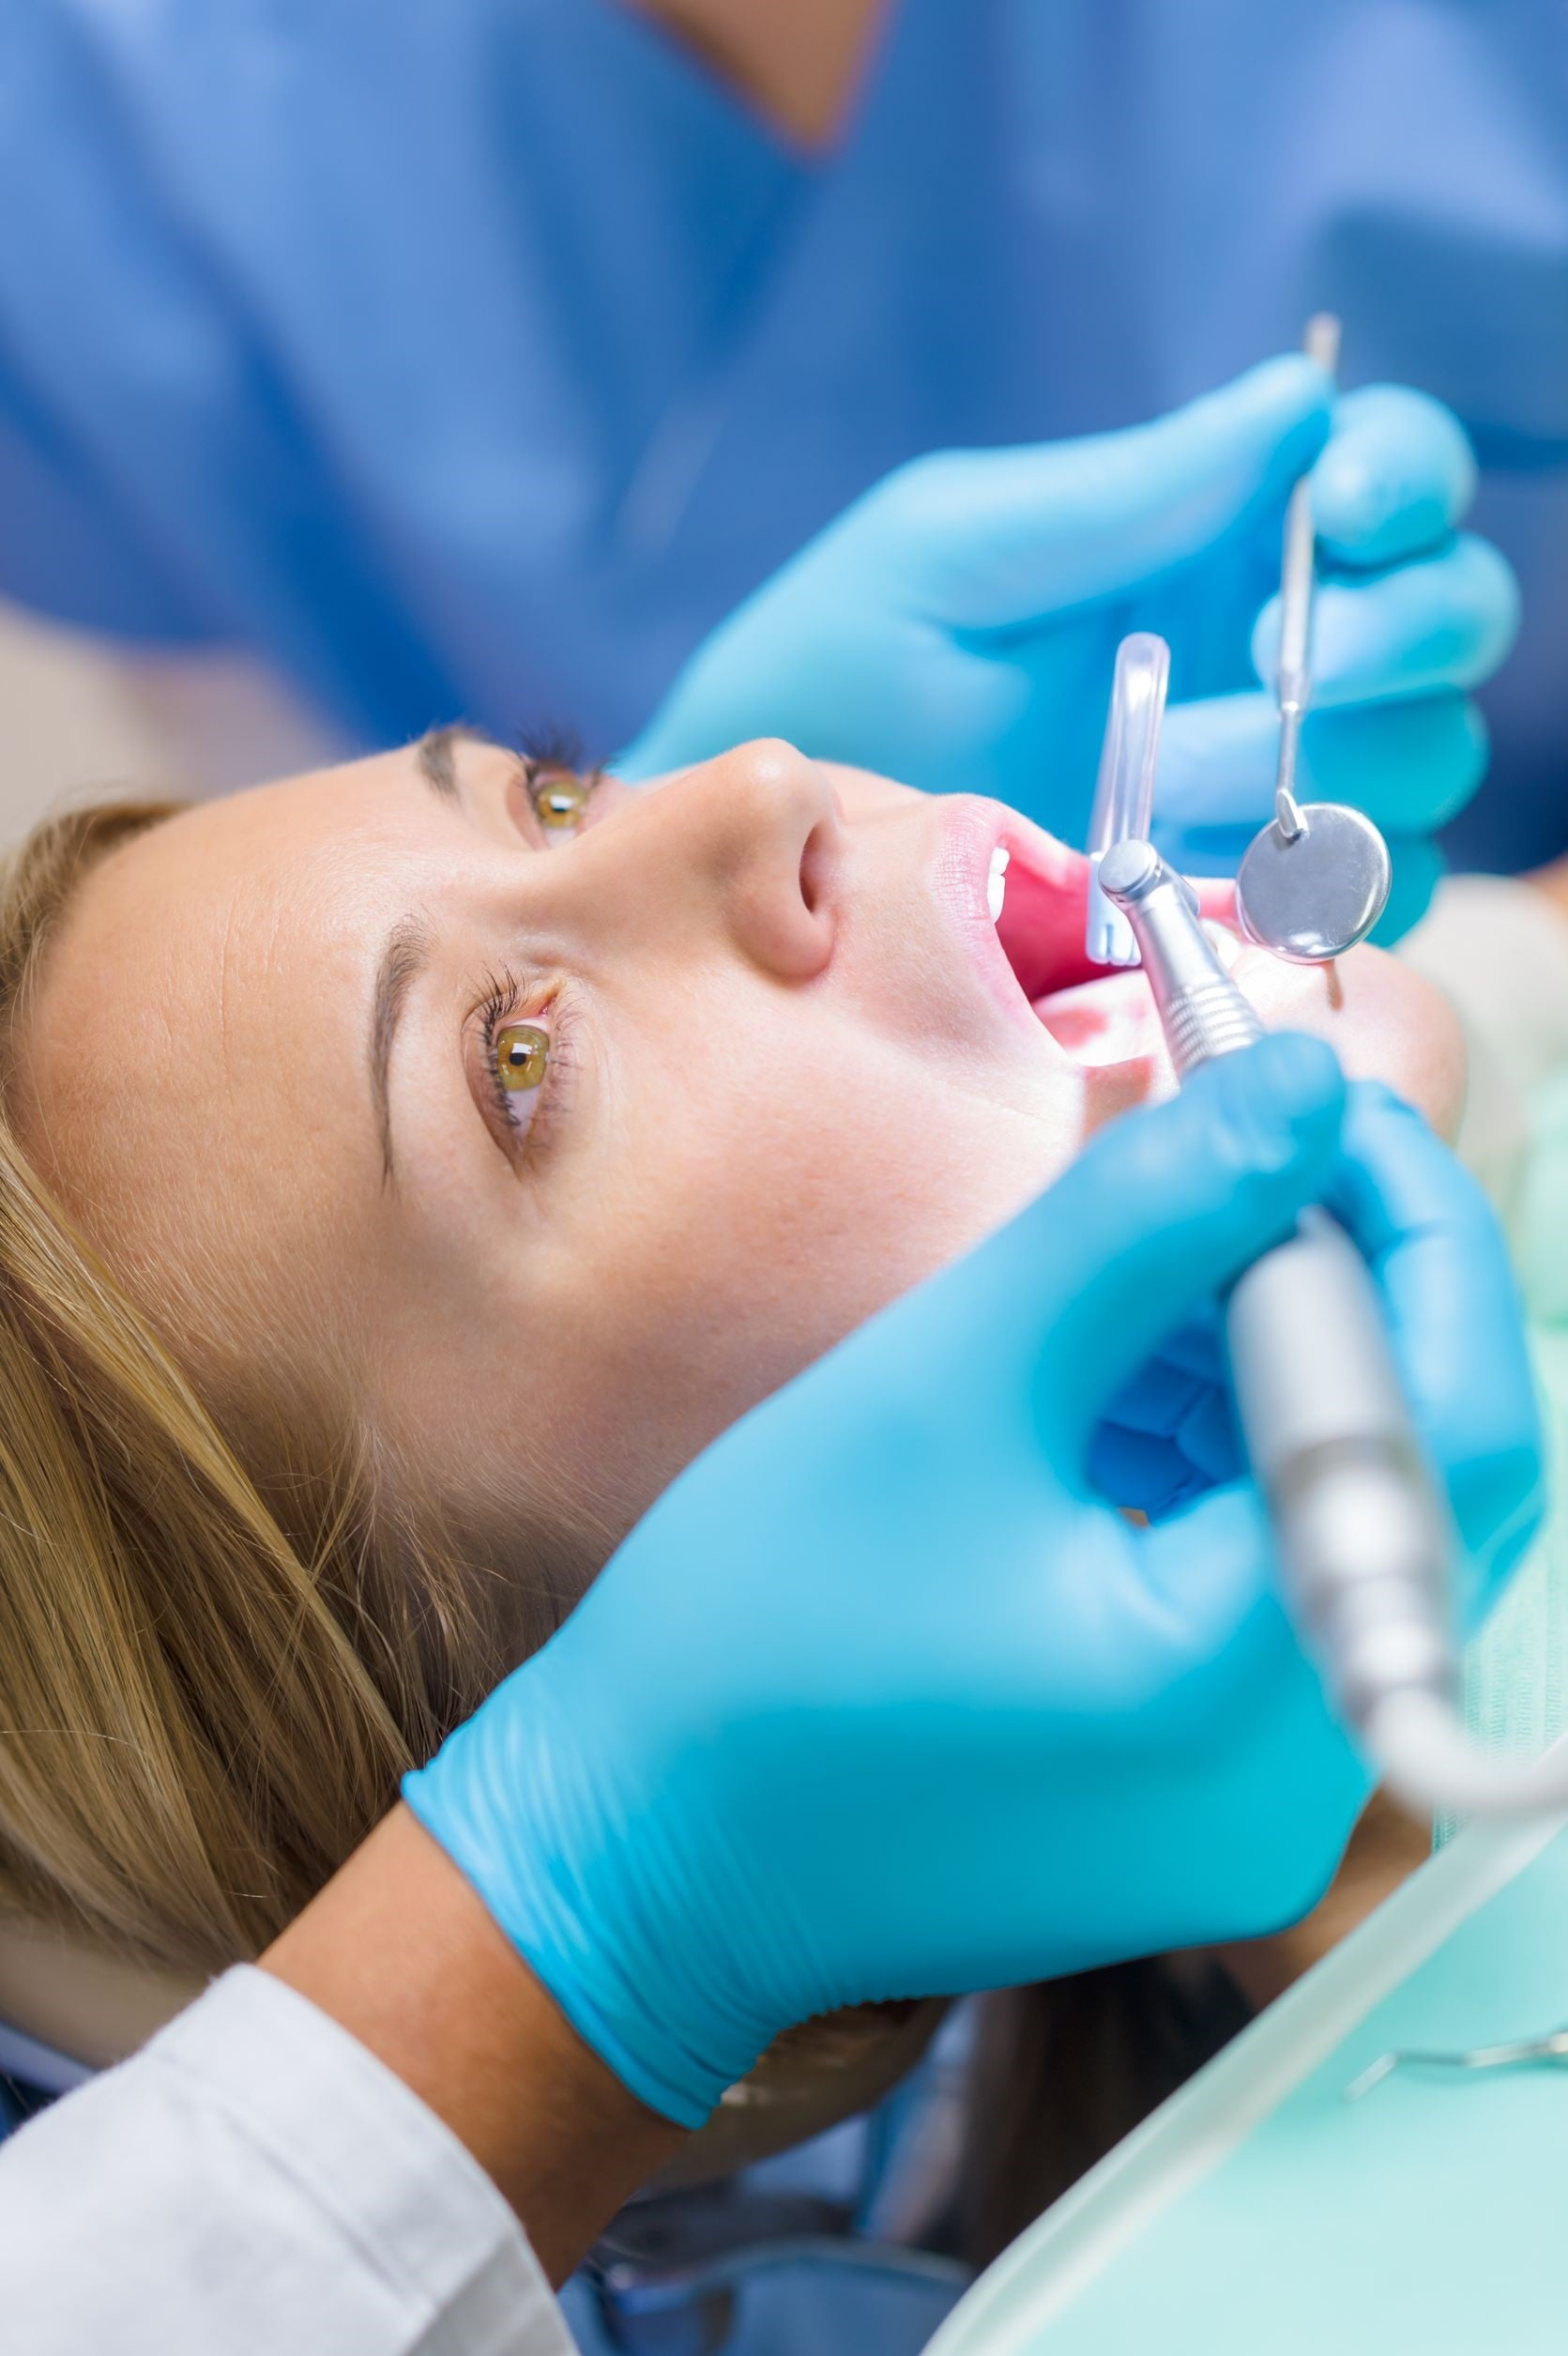 Can I Sue a Dentist for Malpractice?